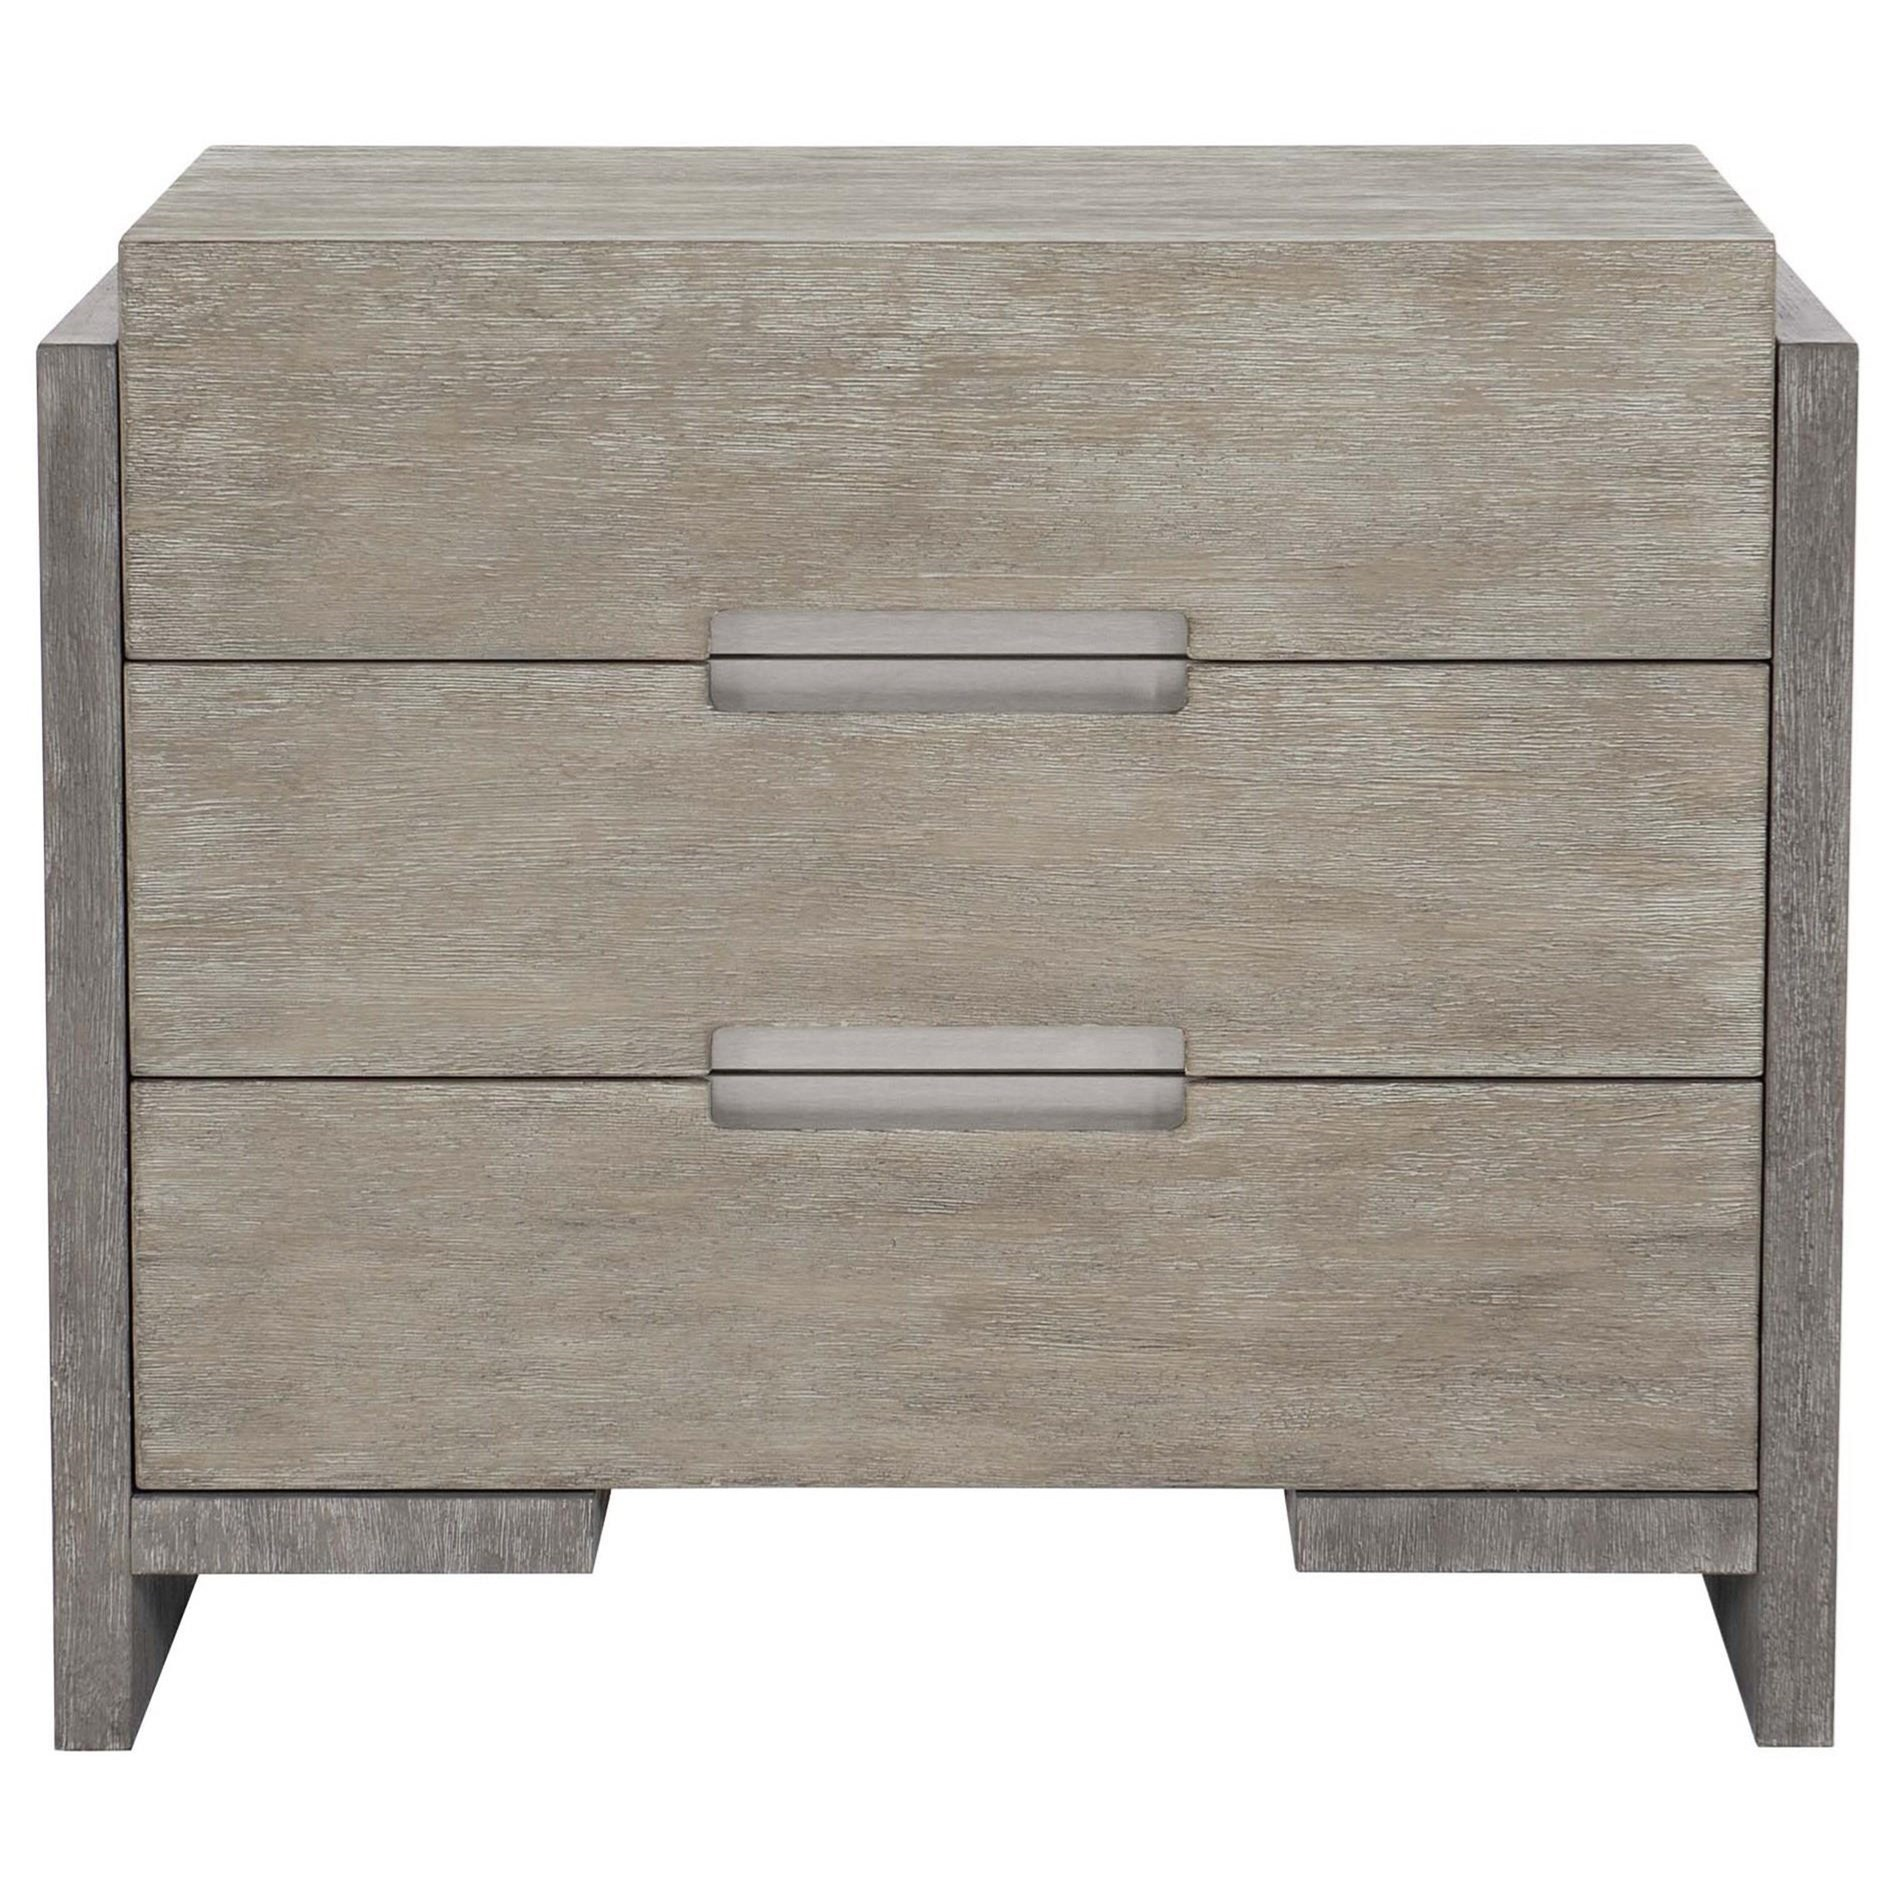 Foundations Nightstand by Bernhardt at Baer's Furniture